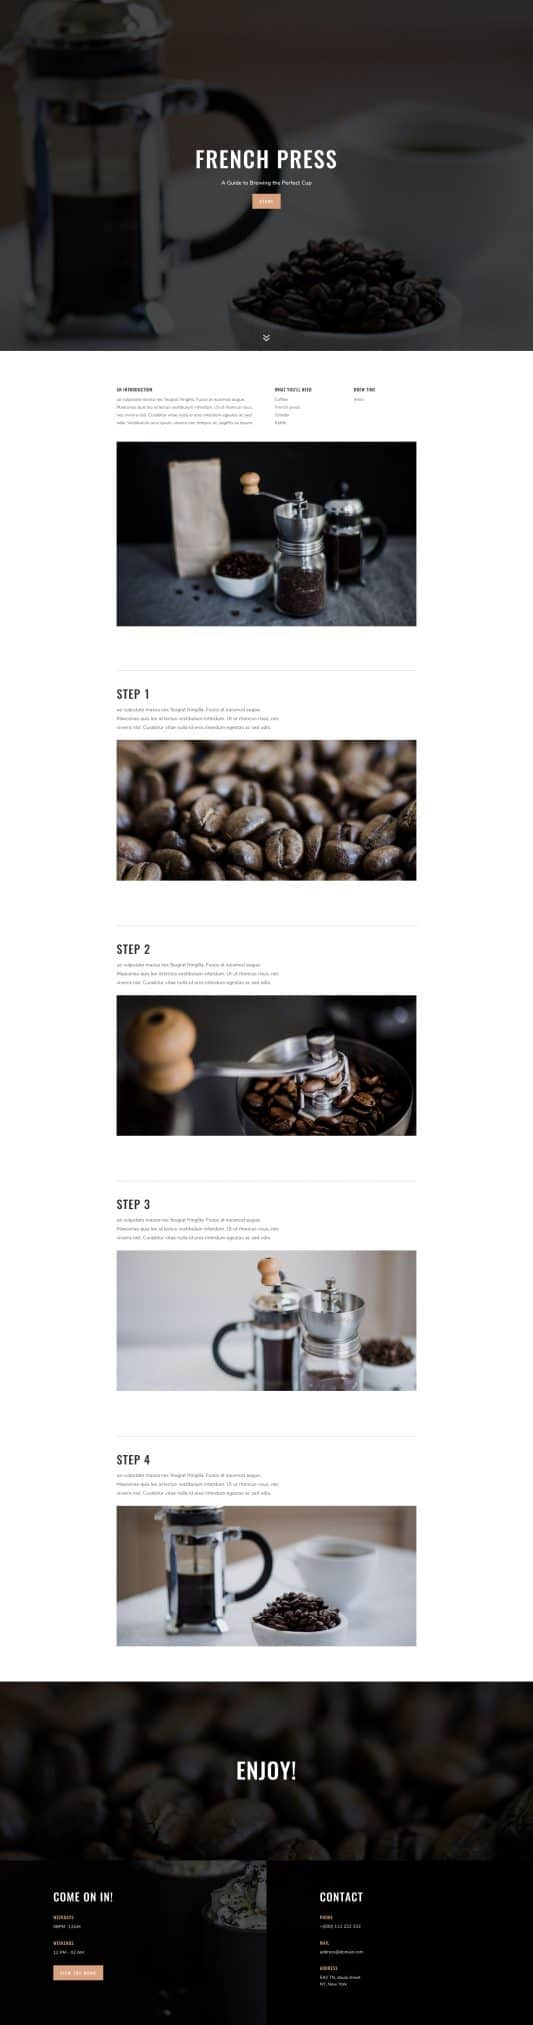 Coffee Shop Web Design 4